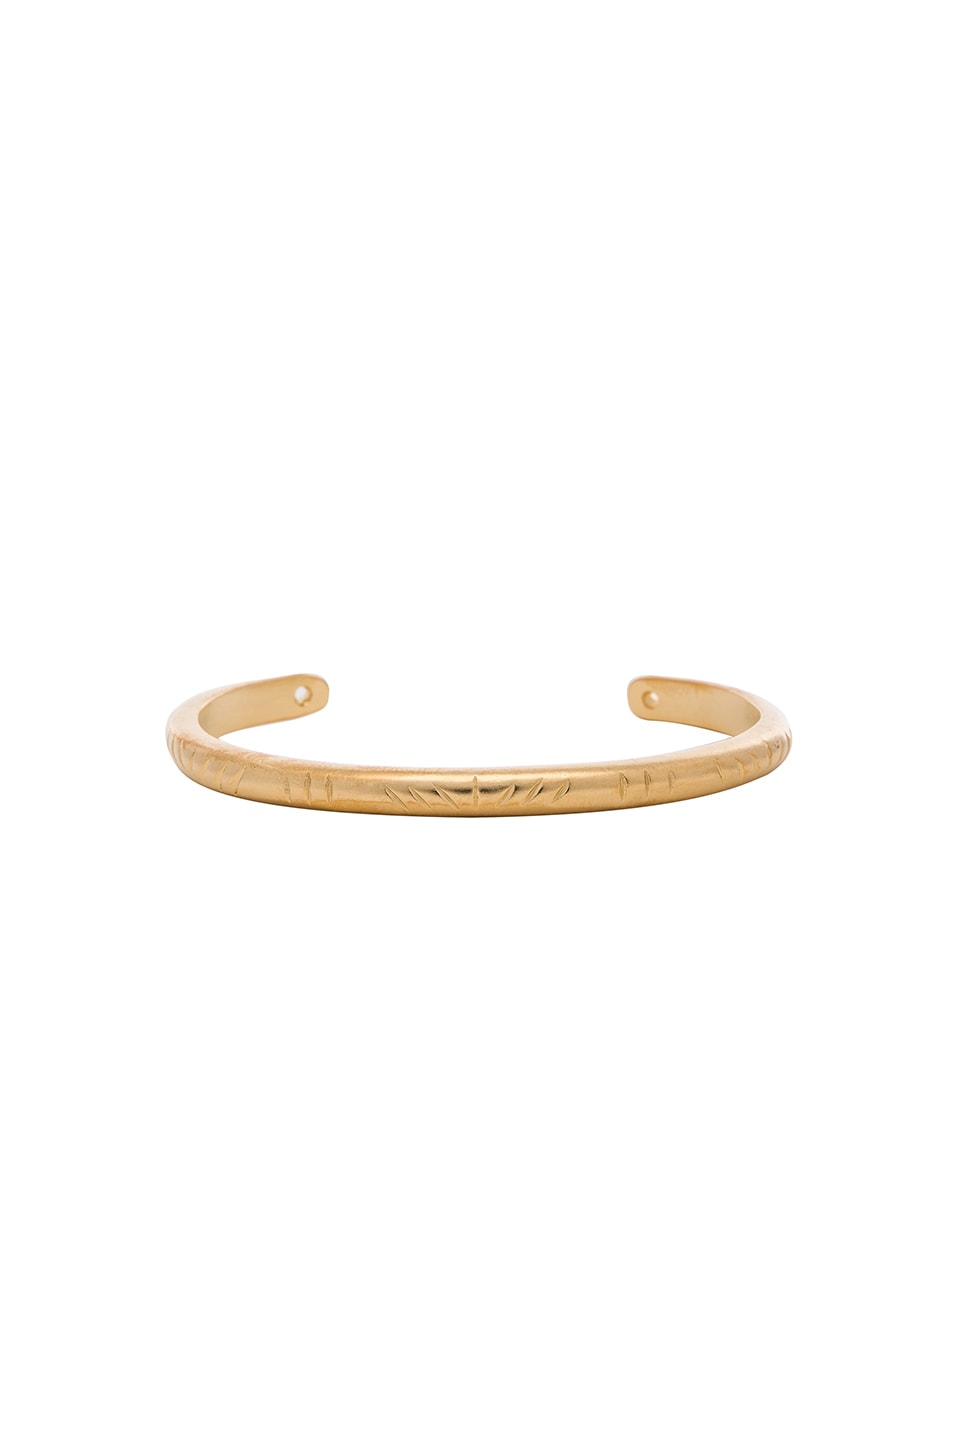 CAM Collector's Cuff in Desert Gold